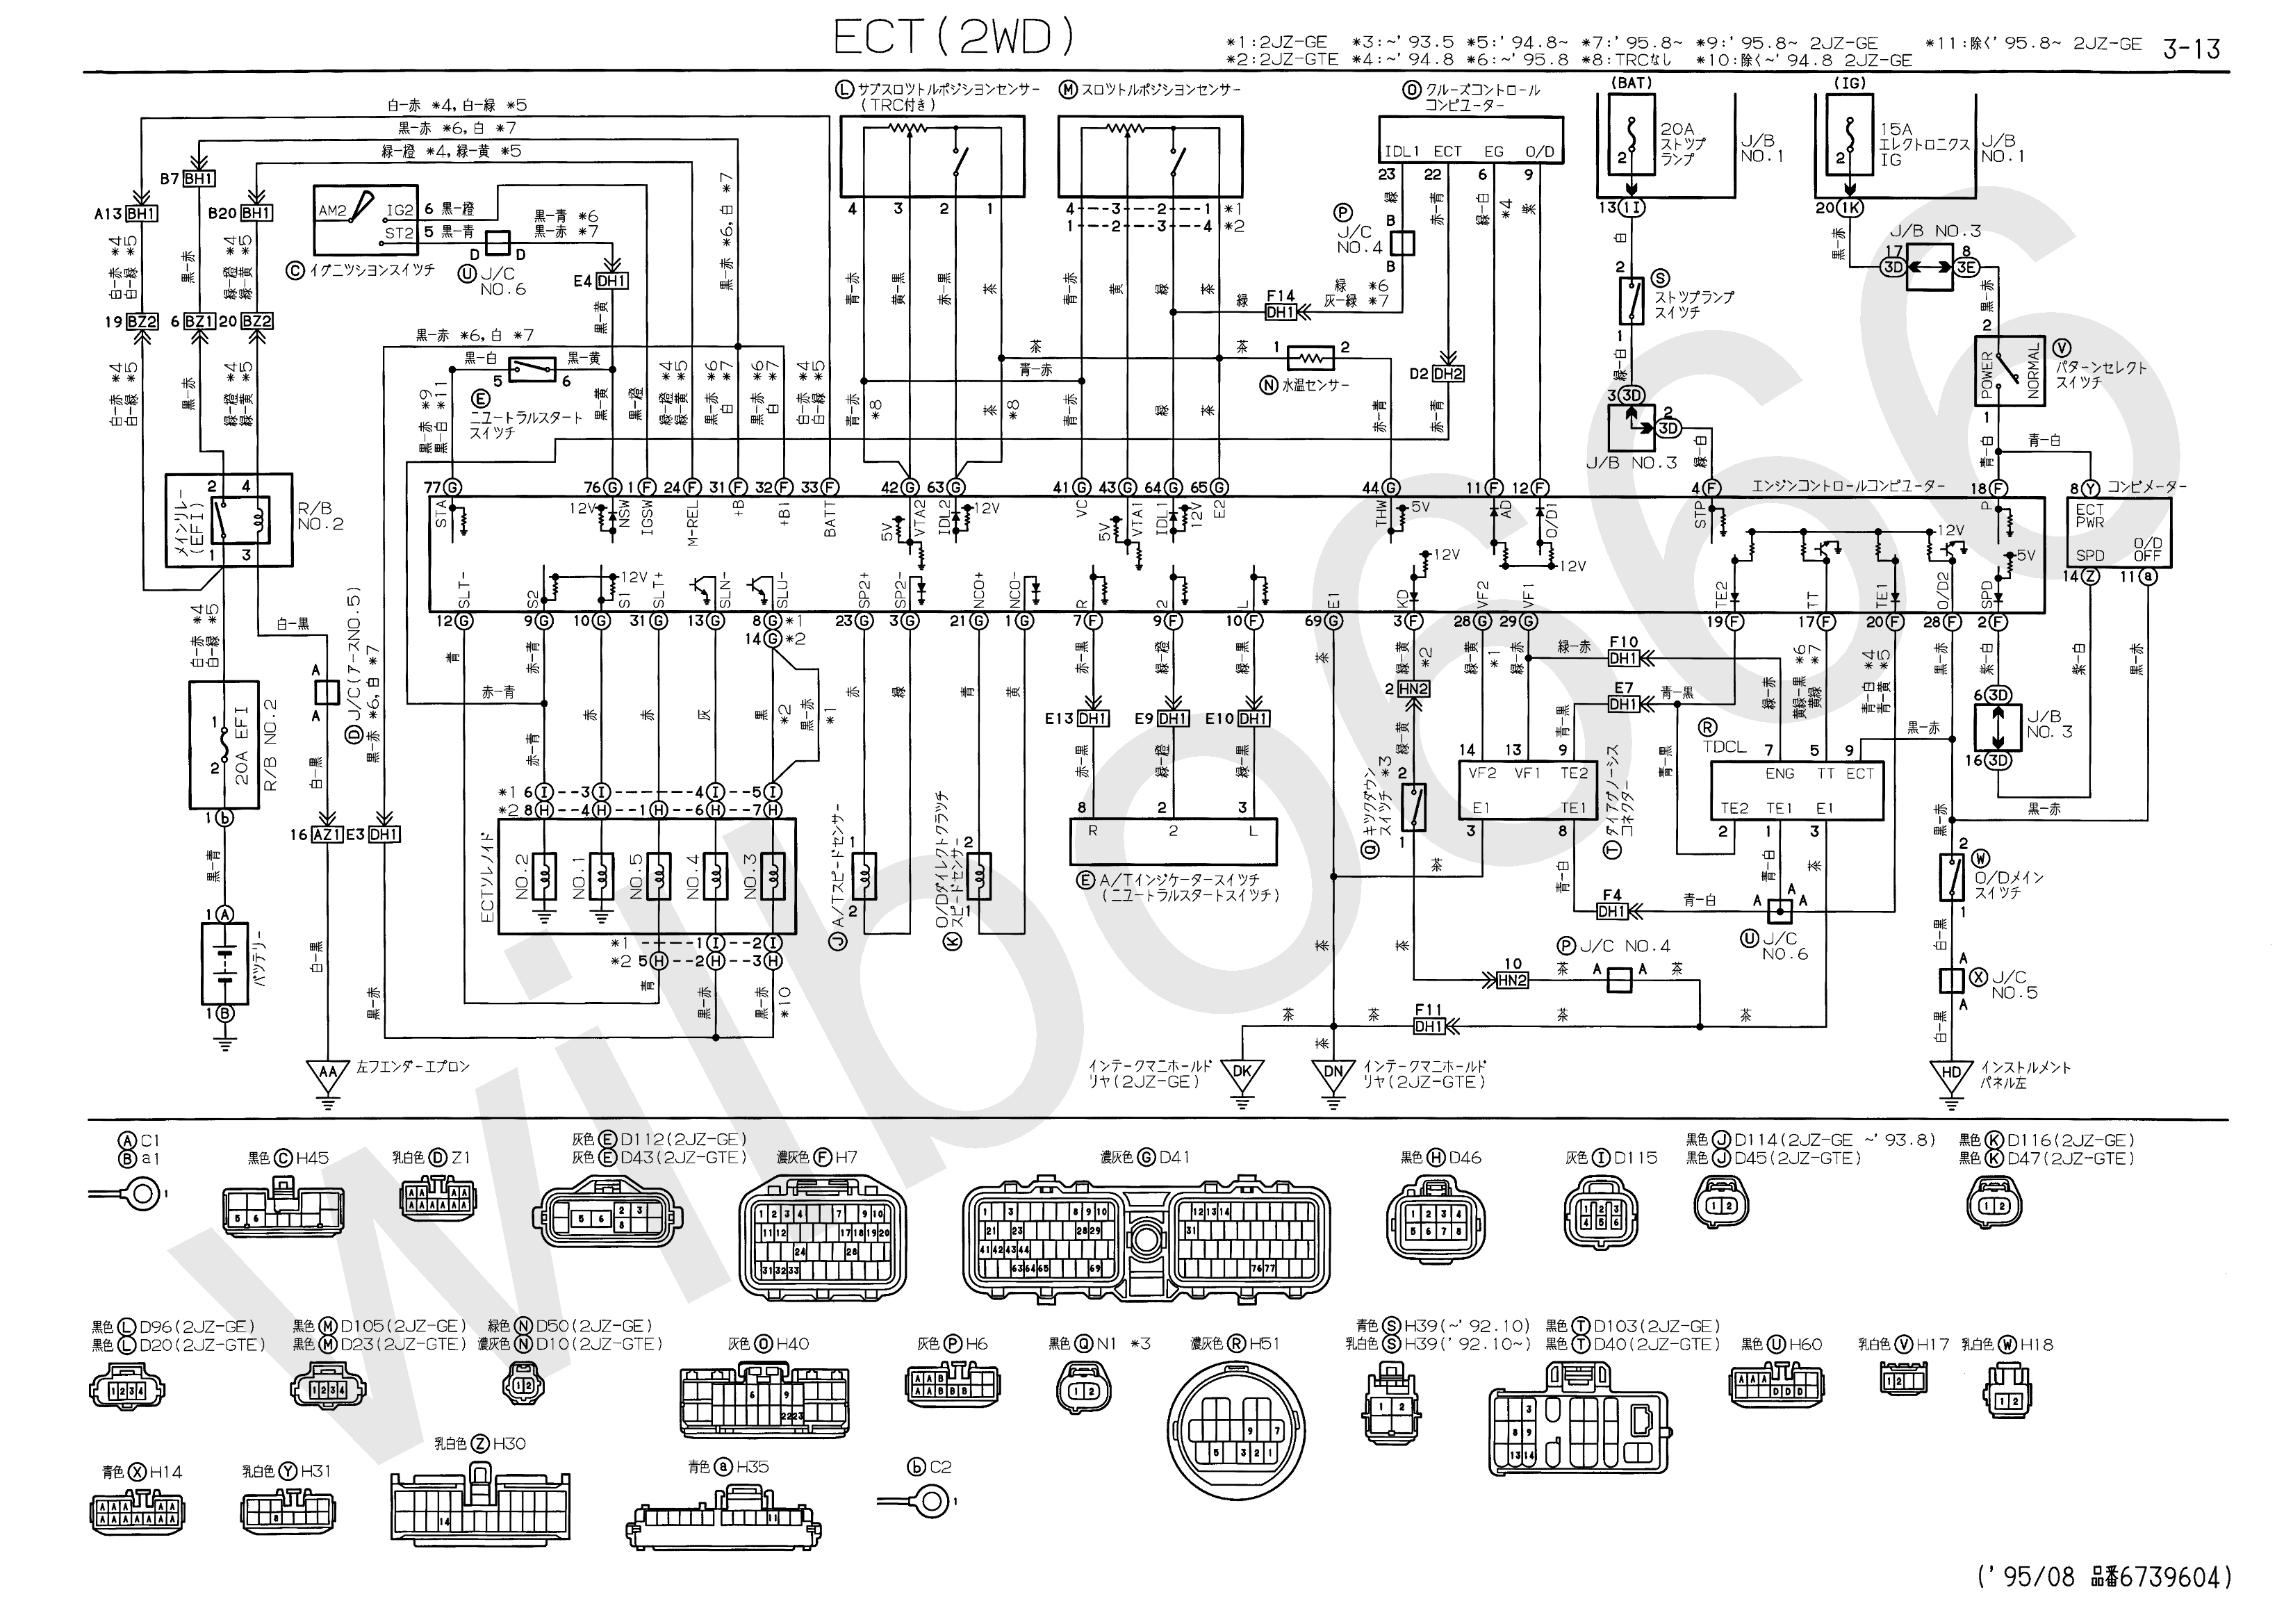 Vw 12v Alternator Wiring. Wiring. Wiring Diagram Images